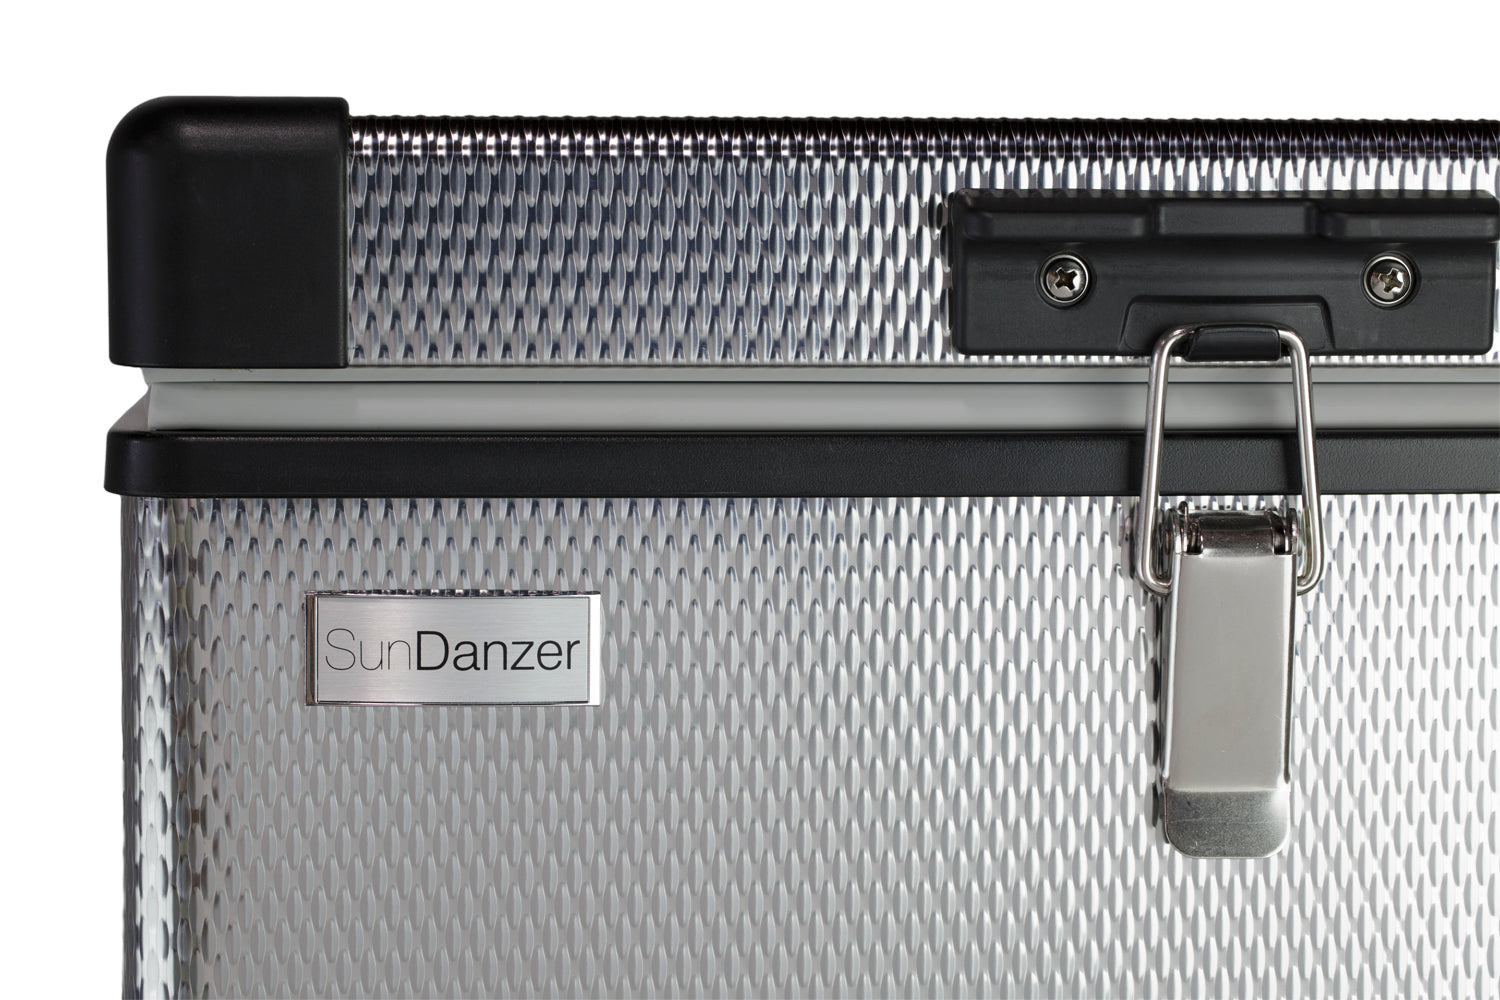 SD-68 Portable Chest Cooler Fridge|Freezer